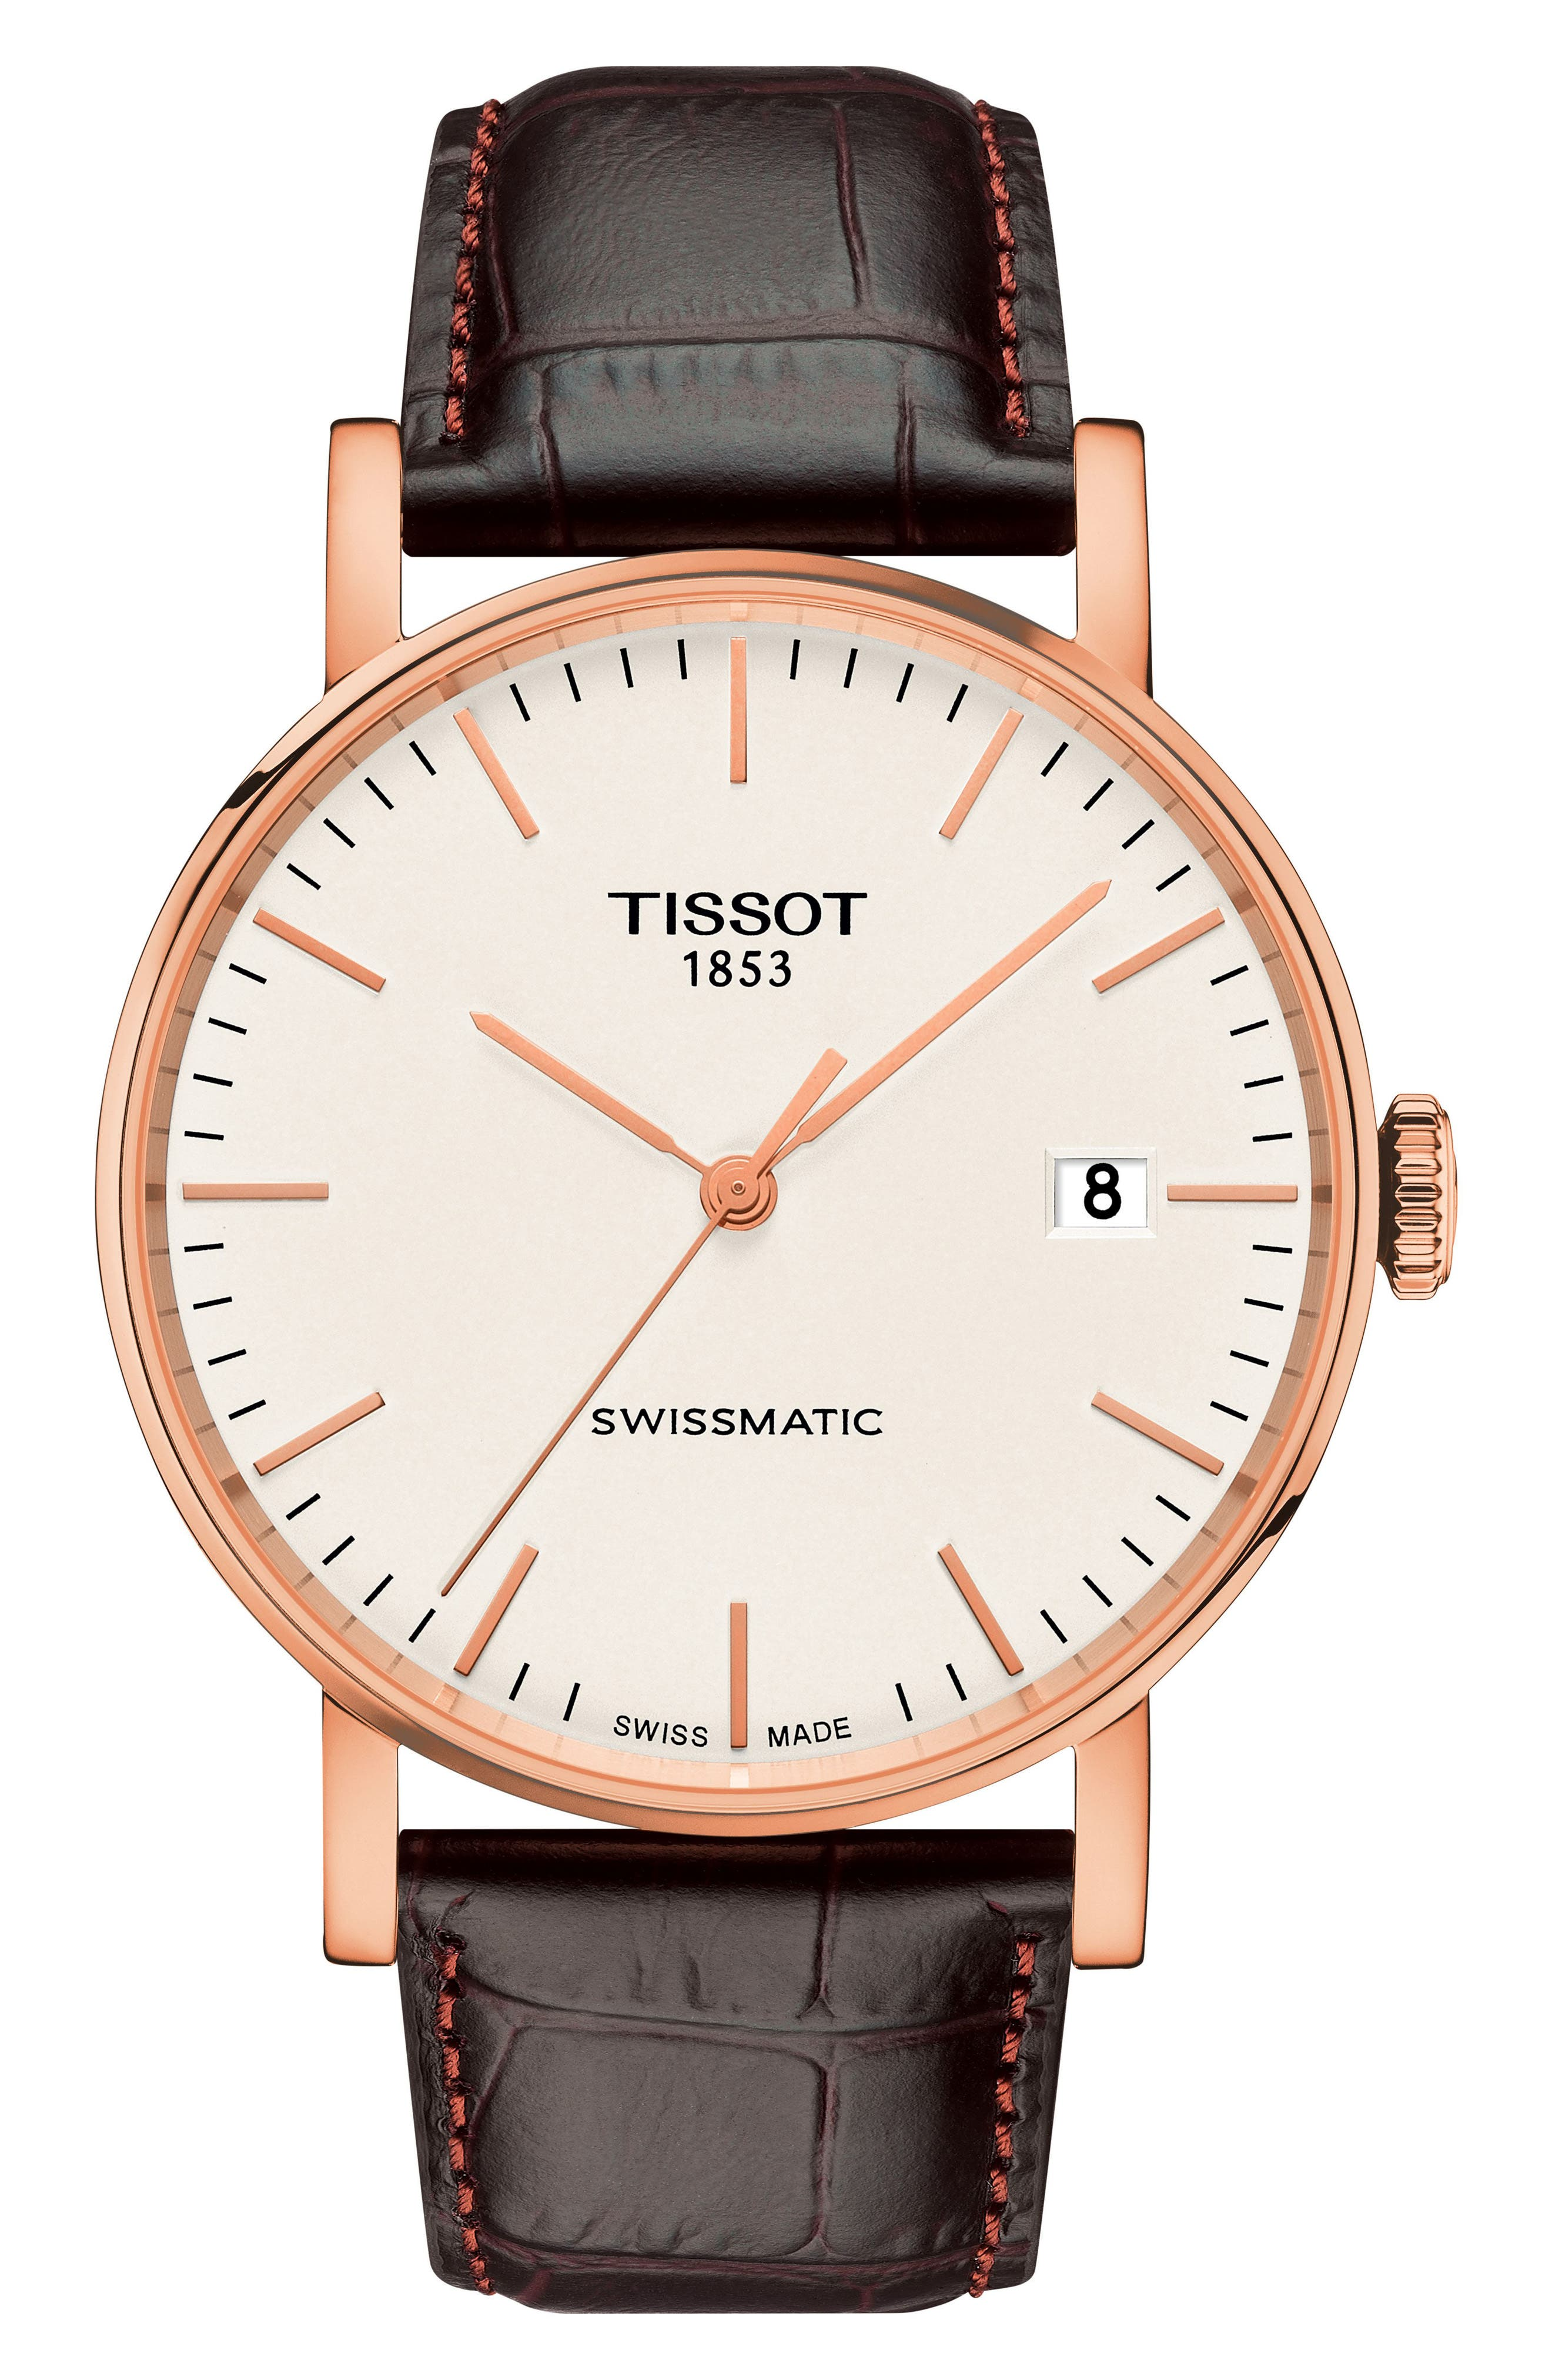 TISSOT, Everytime Swissmatic Leather Strap Watch, 40mm, Main thumbnail 1, color, BROWN/ WHITE/ ROSE GOLD